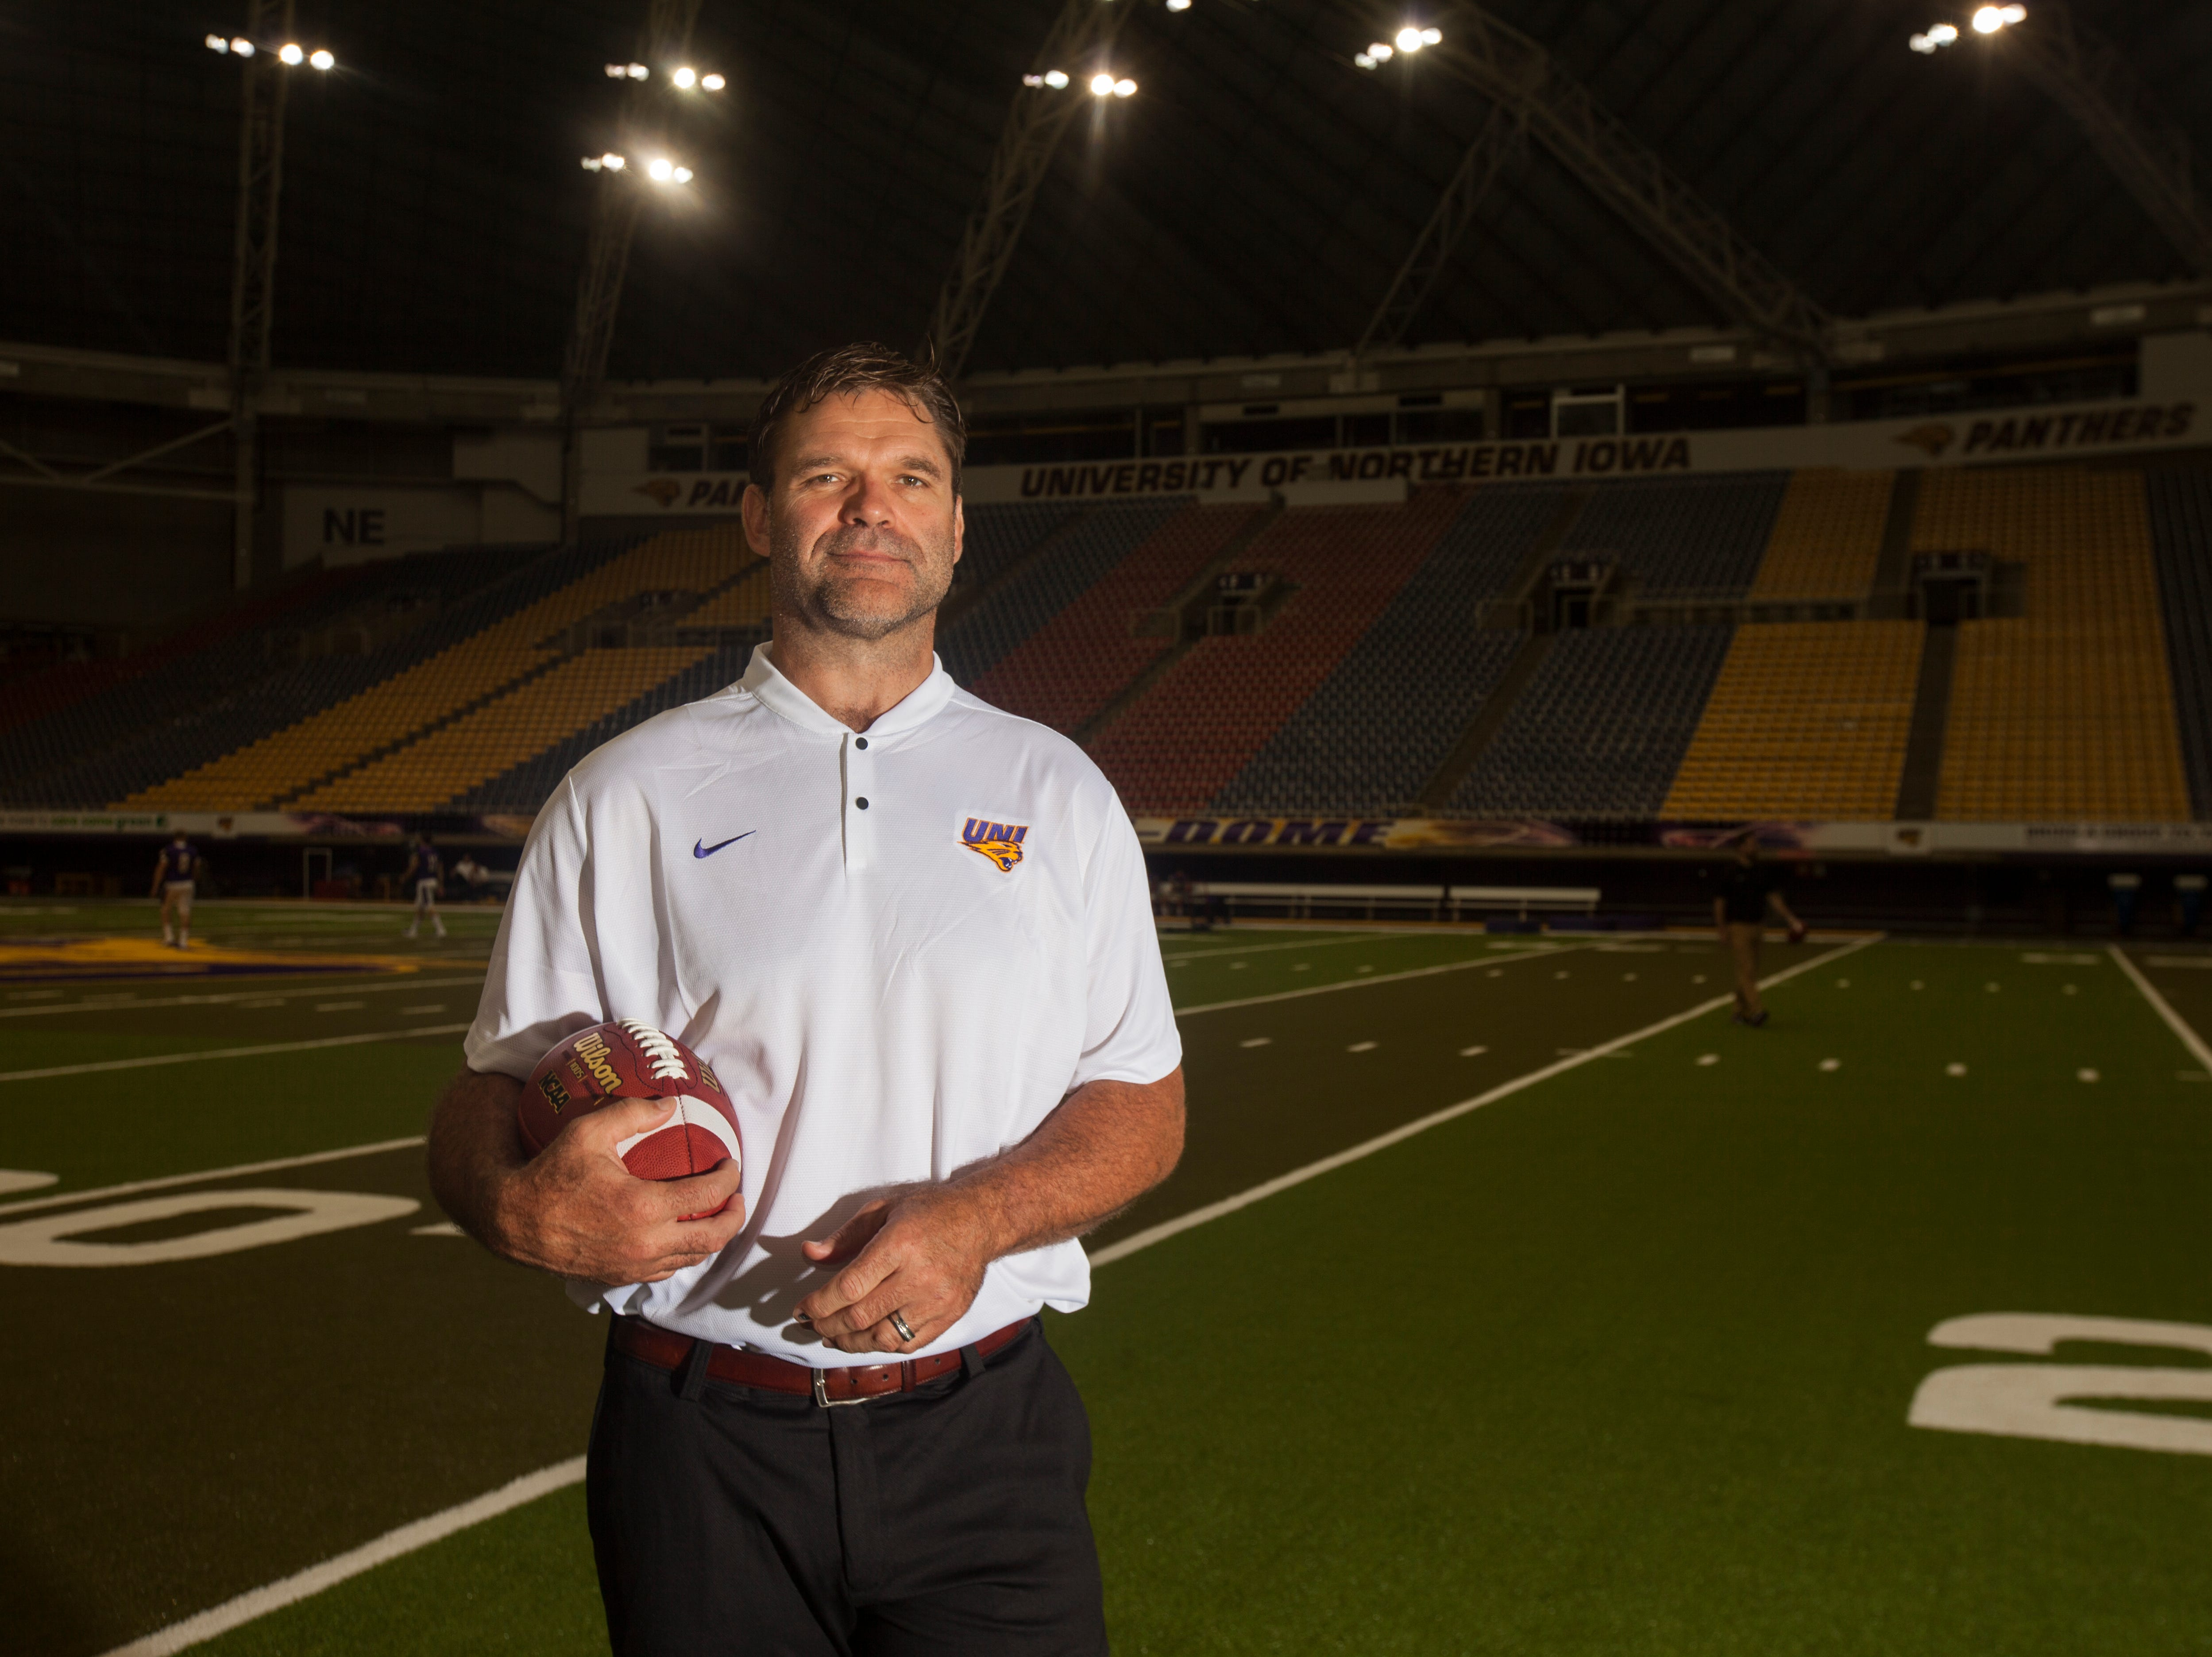 UNI defensive line coach Bryce Paup poses for a portrait during media day on Wednesday, Aug. 8, 2018, at the UNI-Dome in Cedar Falls, Iowa.